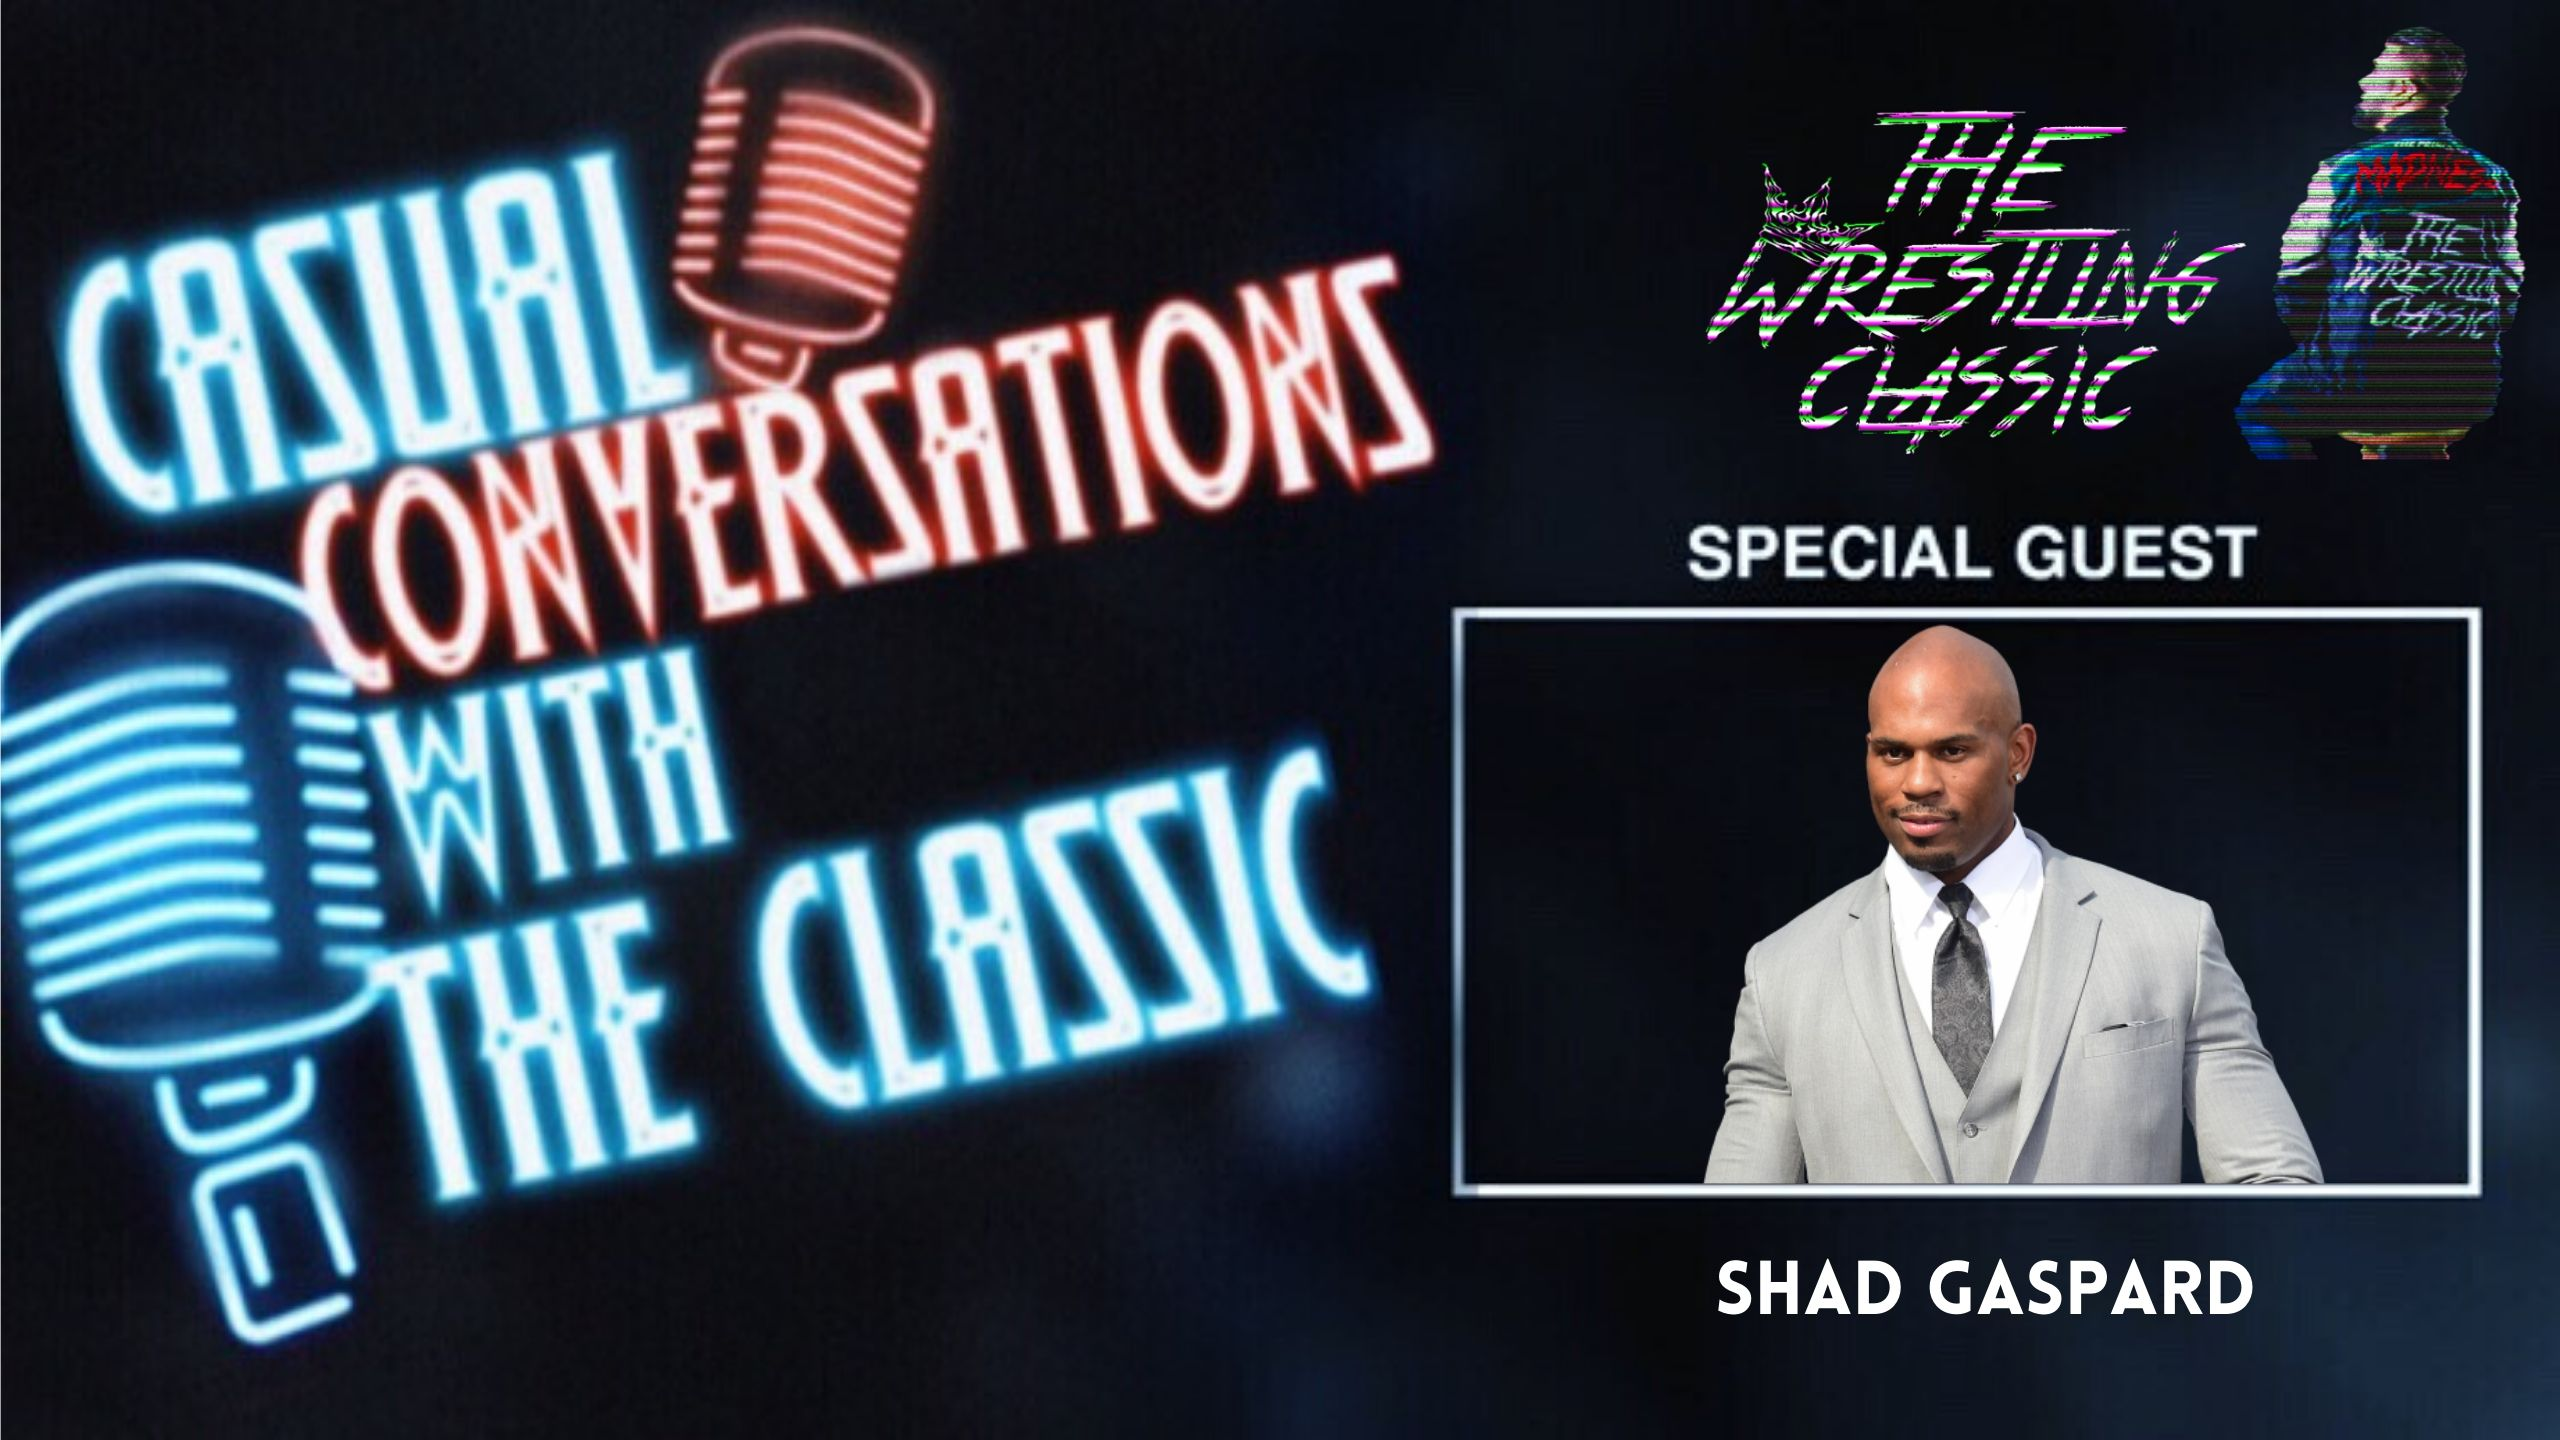 Casual Conversations with The Classic – Round 2 w/ Shad Gaspard